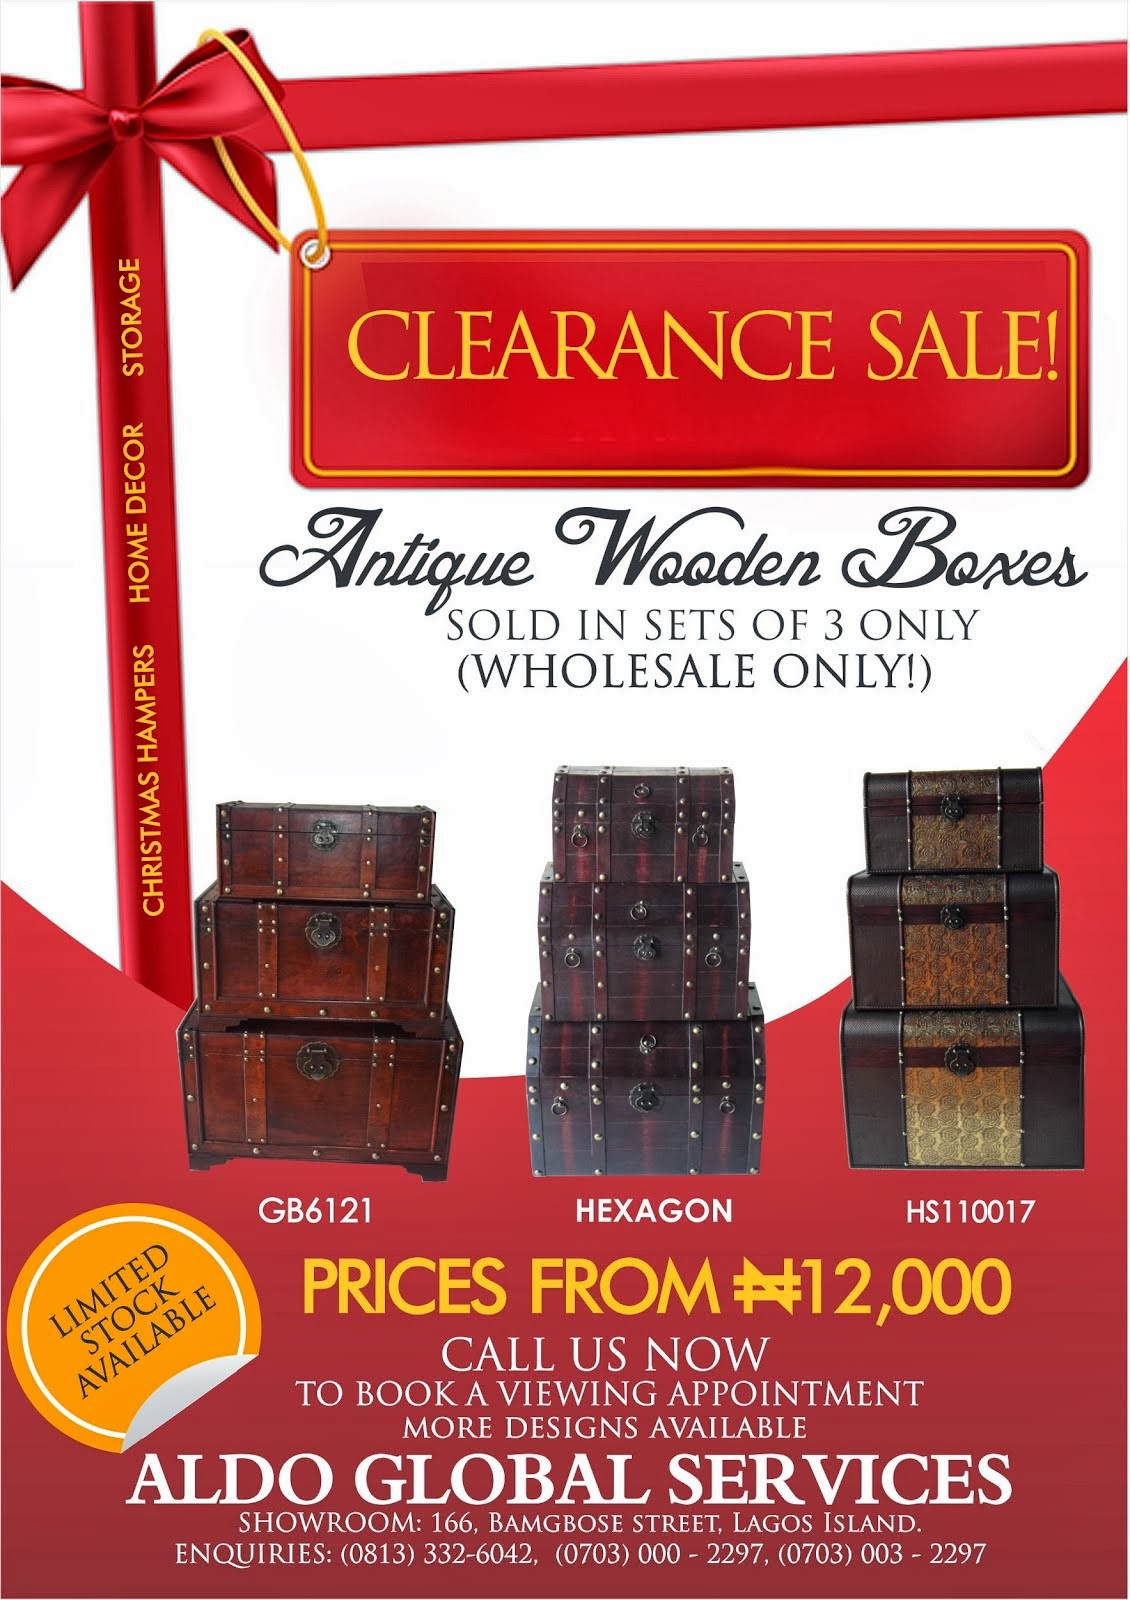 CLEARANCE SALES ON ANTIQUE WOODEN BOXES